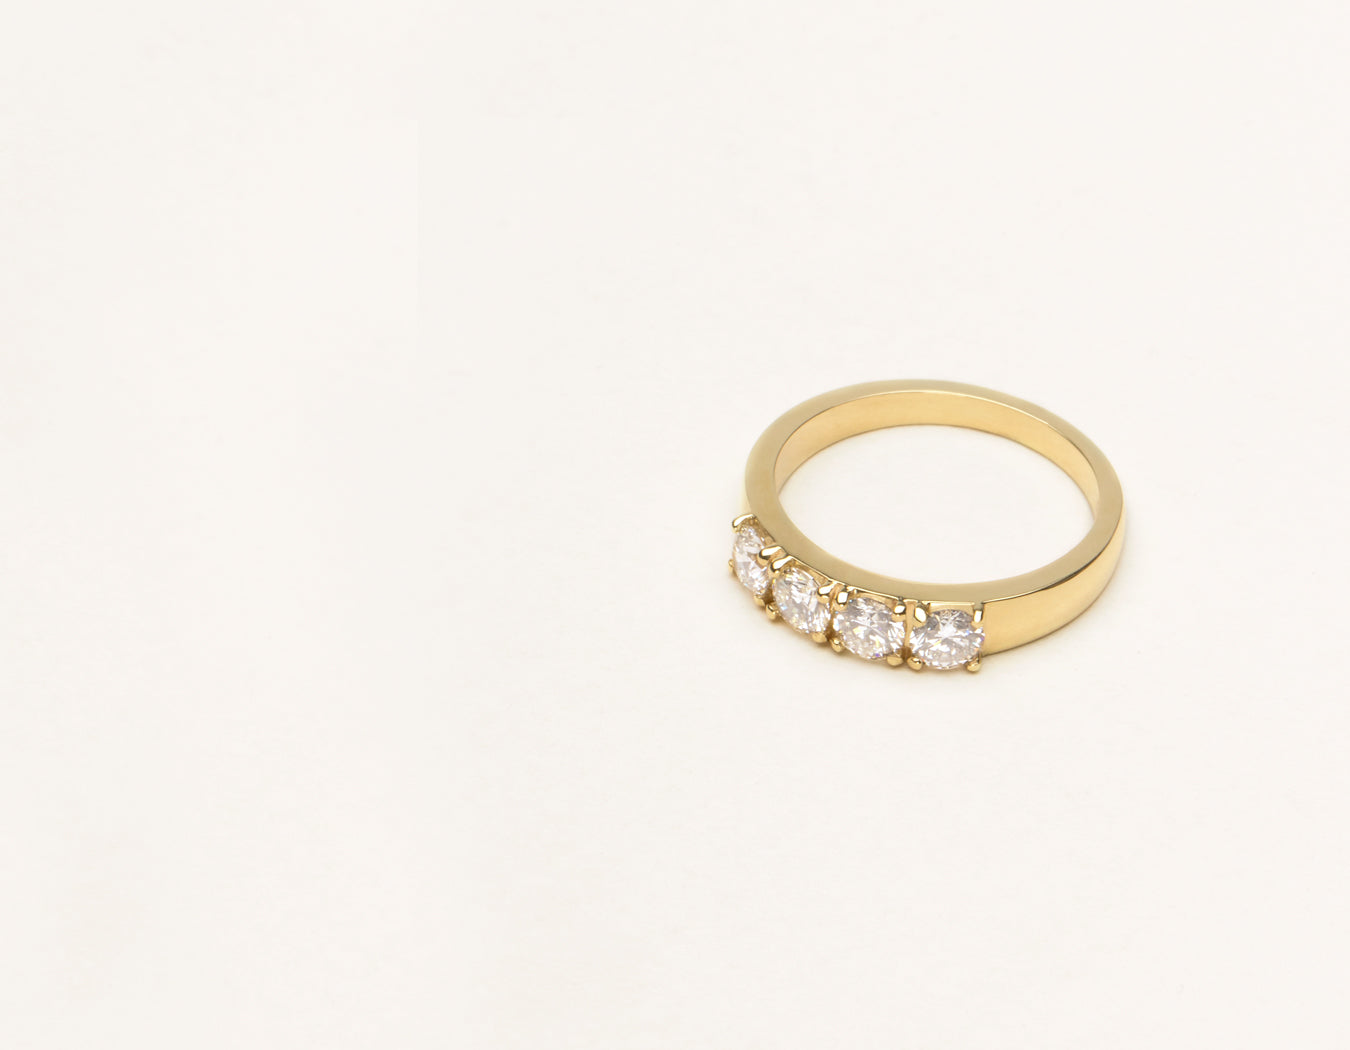 Vrai & Oro Simple Round Brilliant Cut Diamond Tetrad Band in 14k solid yellow gold